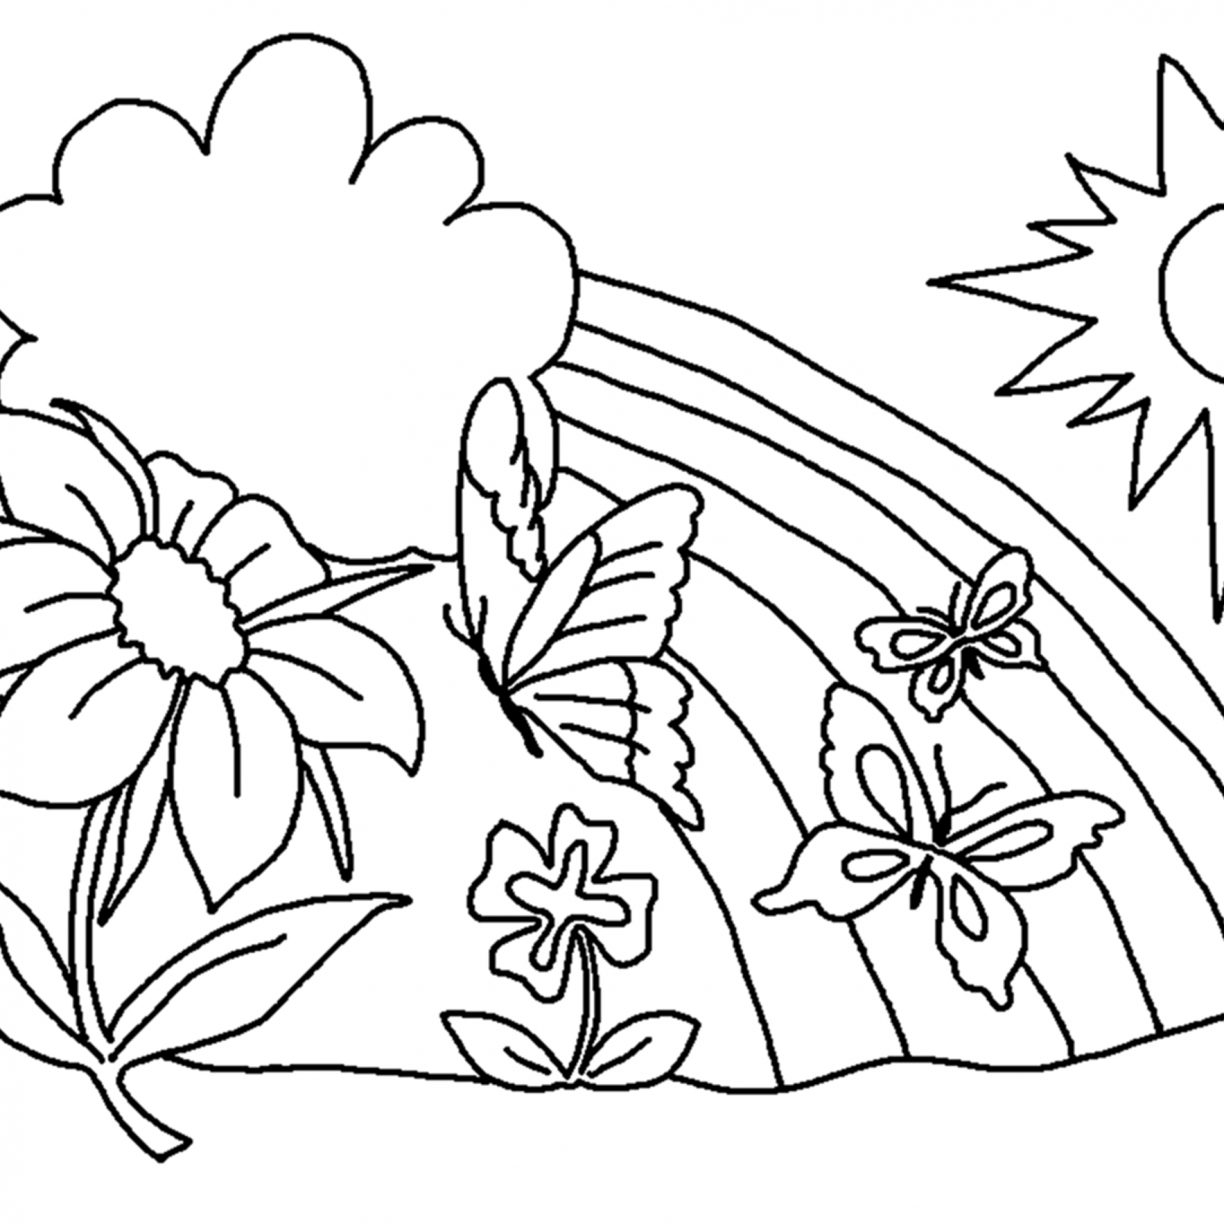 1224x1224 Free Printable Preschool Coloring Pages Things That Are For Kids